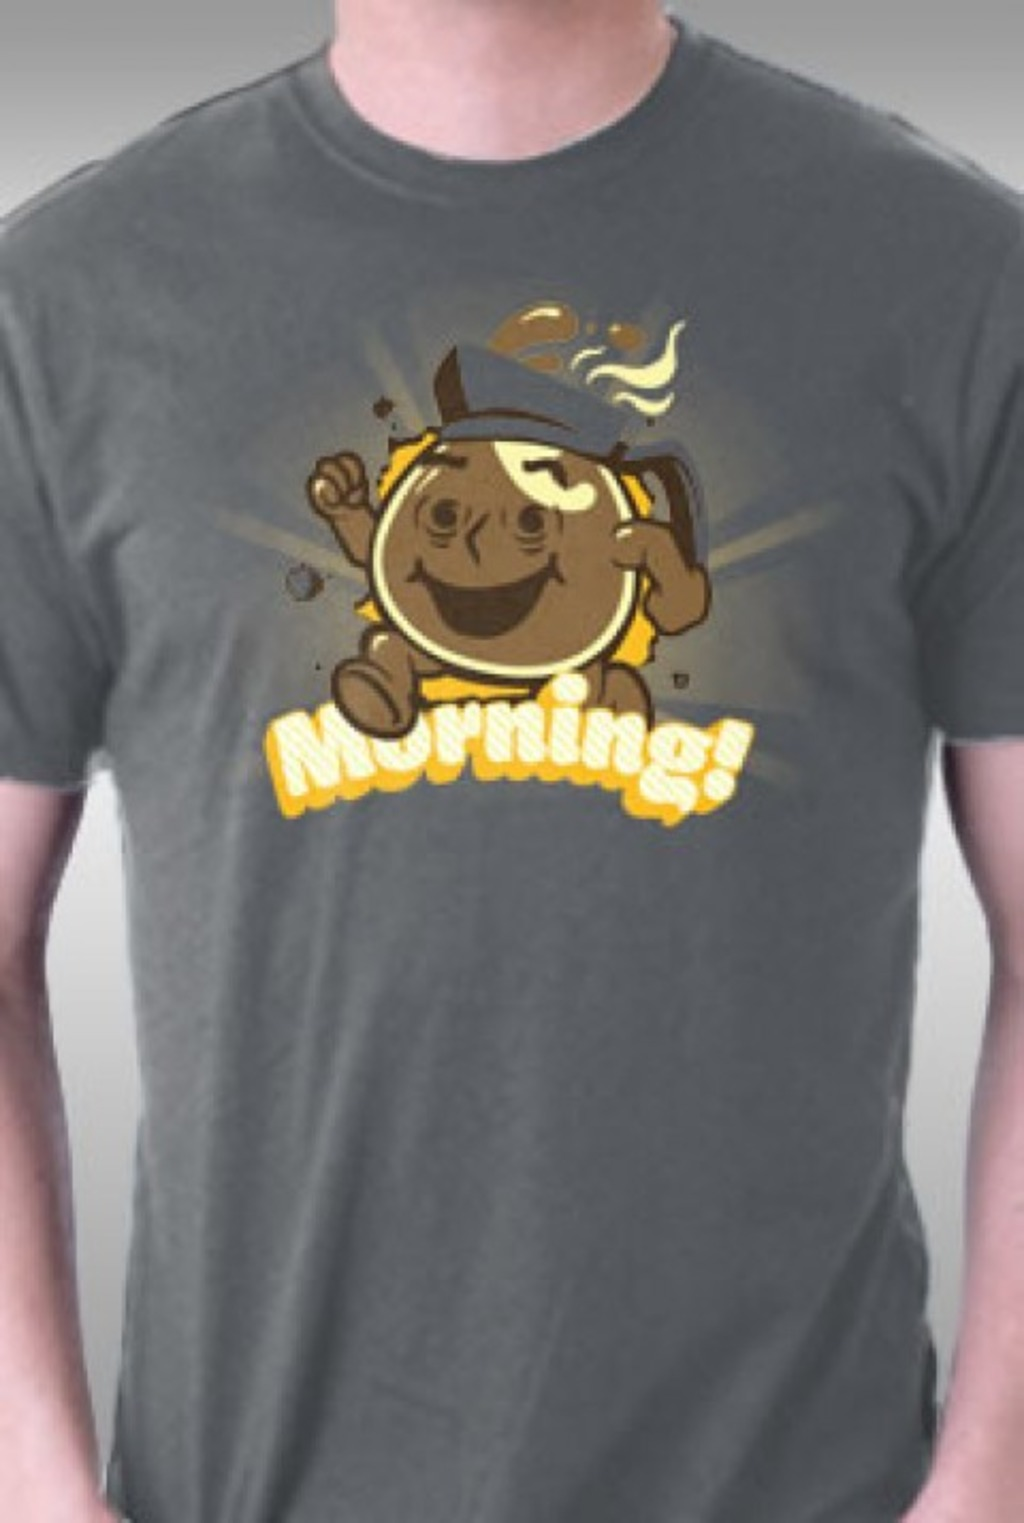 TeeFury: Morning!